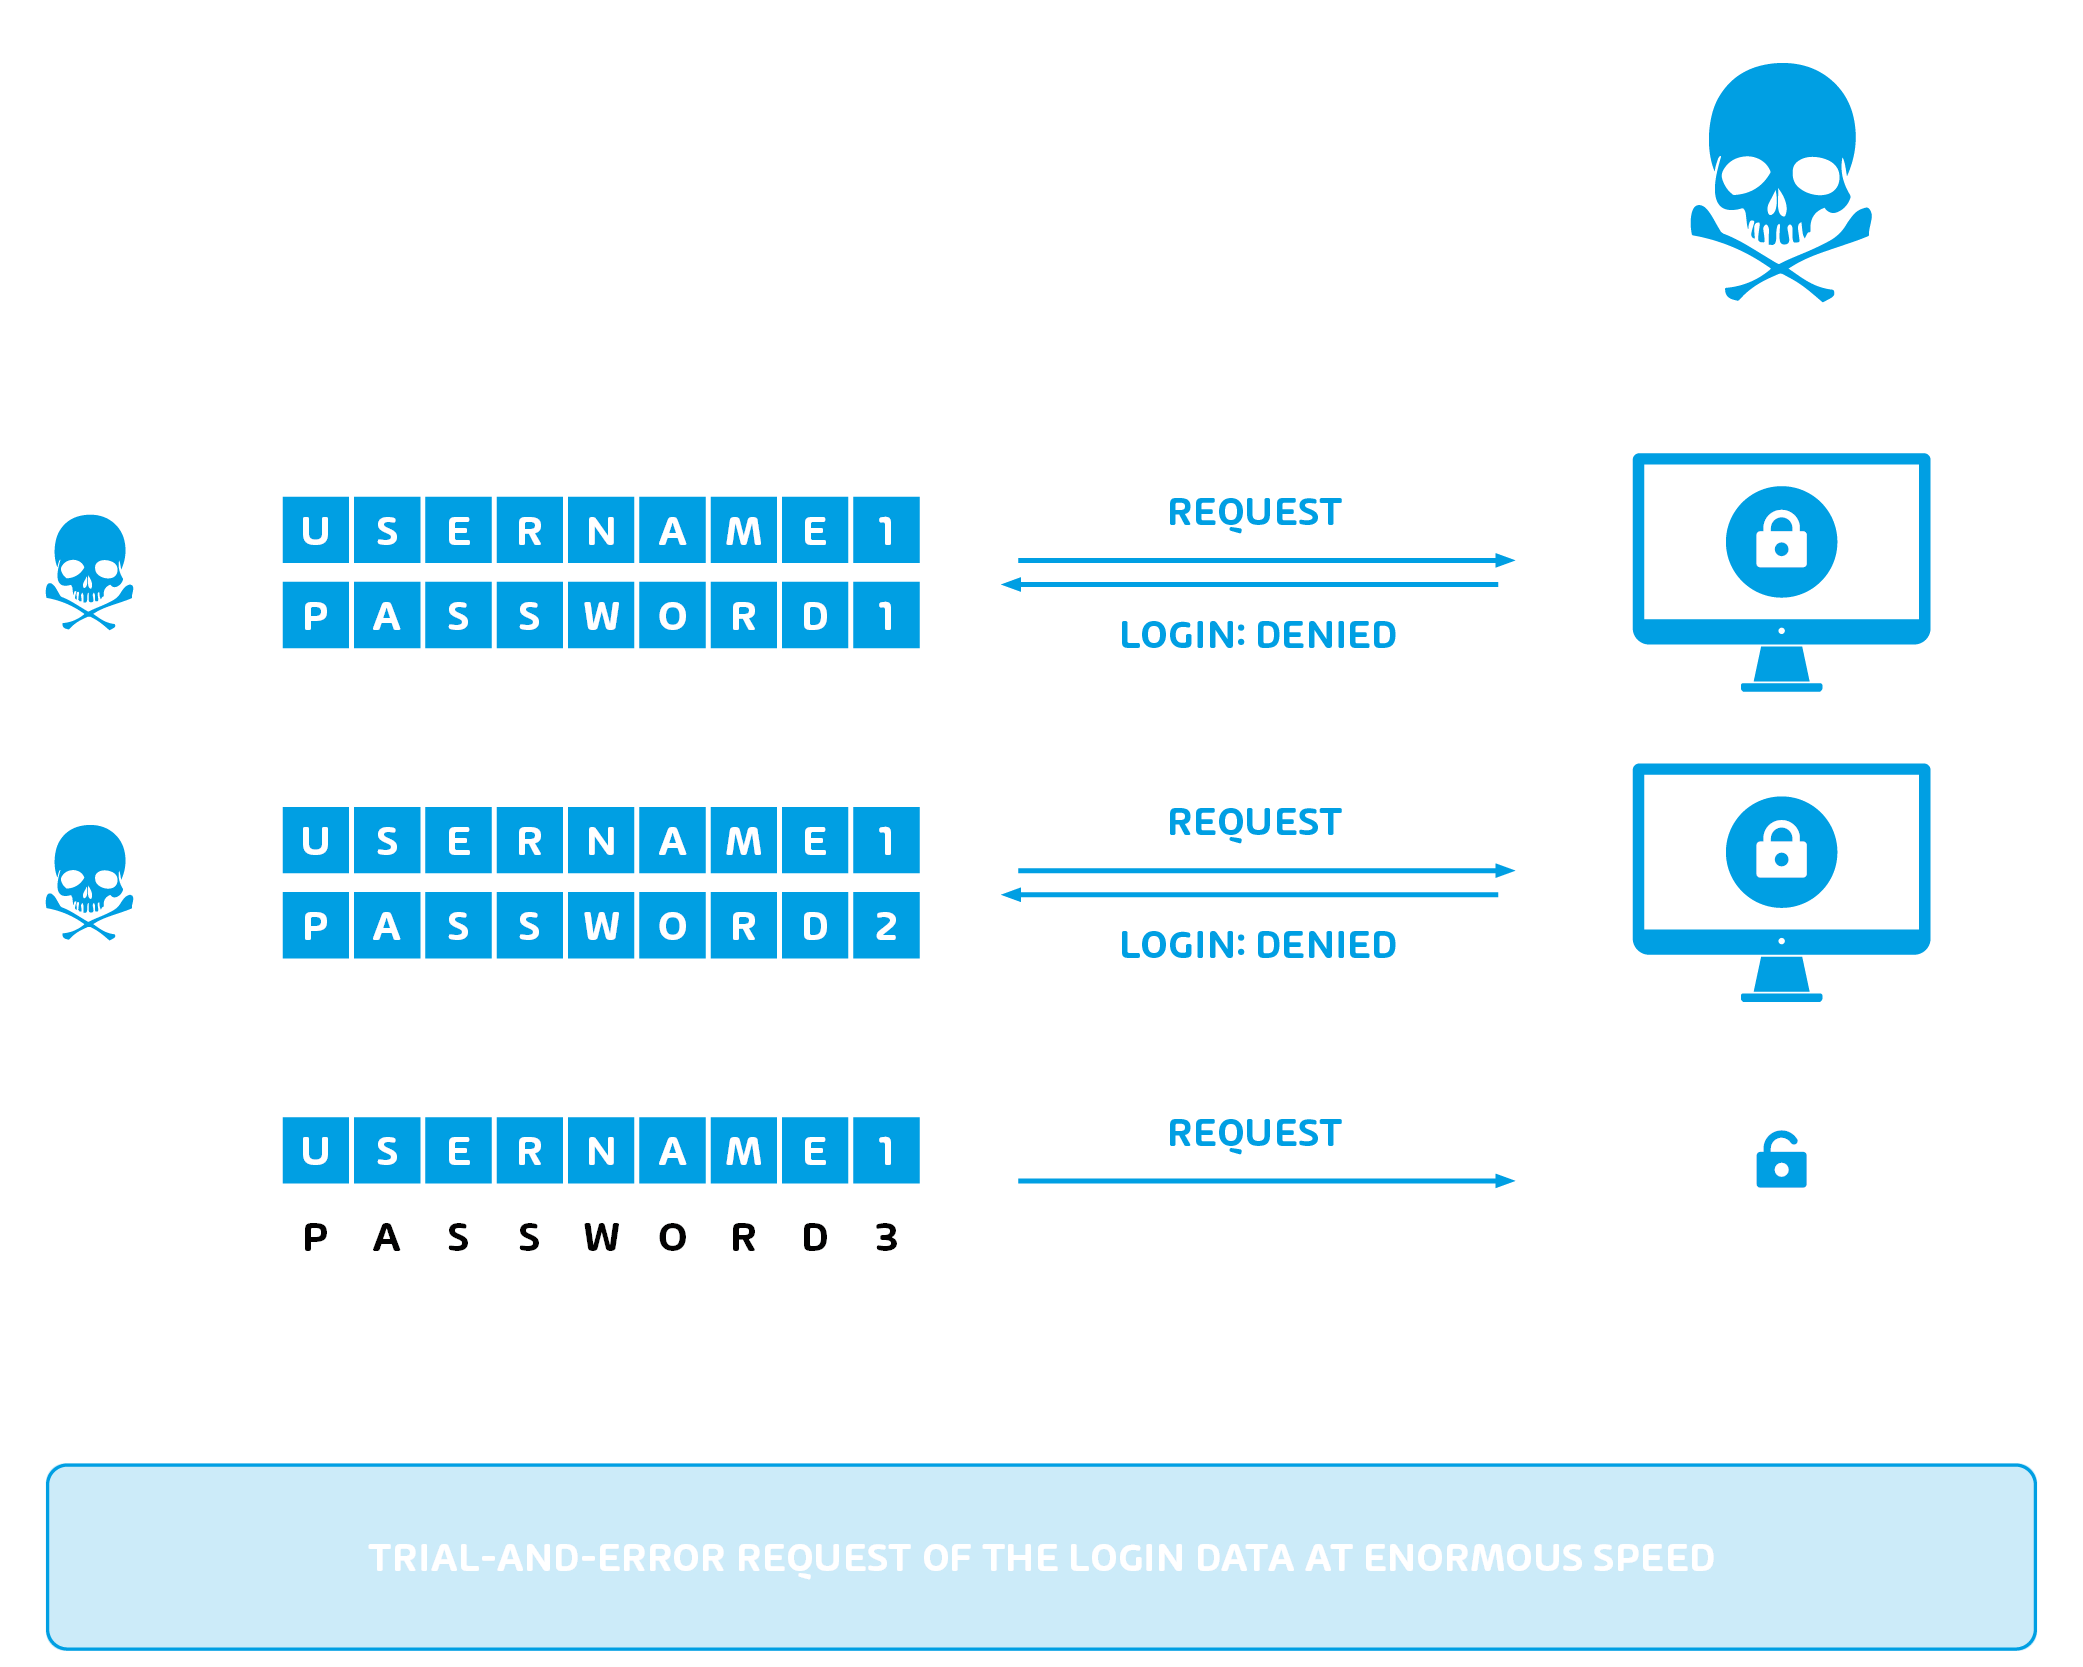 Infographic about Brute Force Attacks